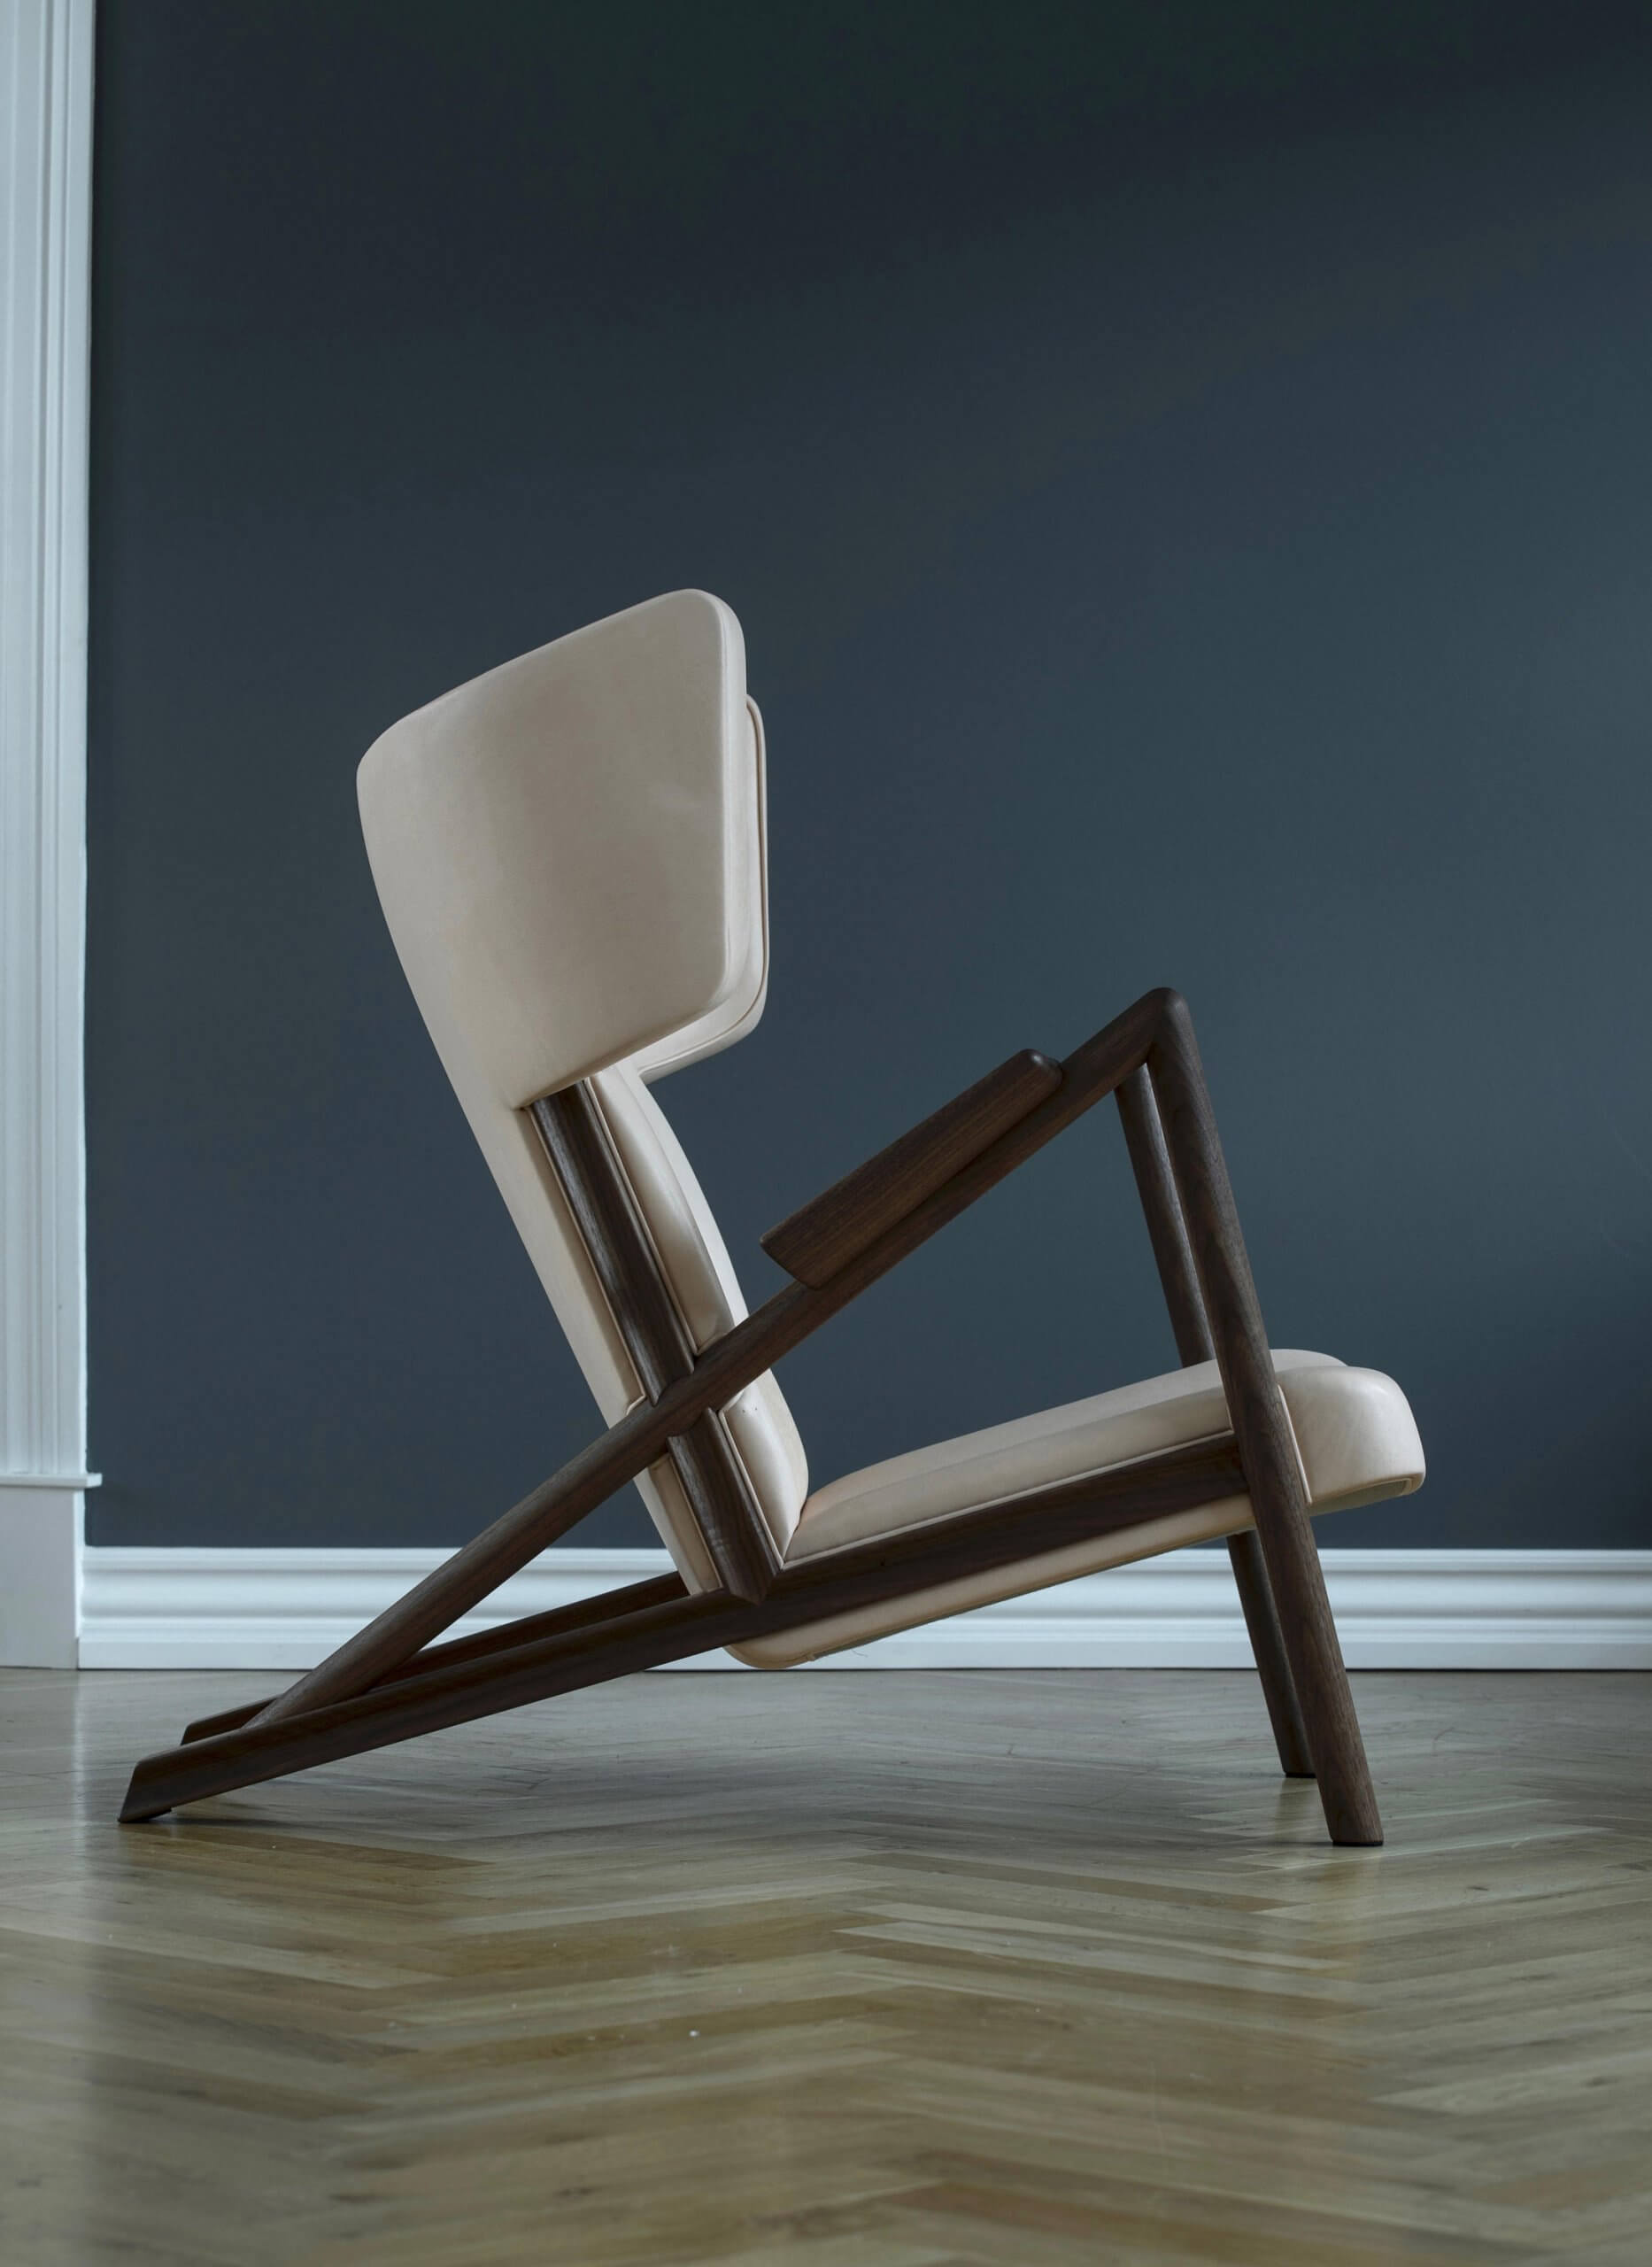 The Grasshopper Chair